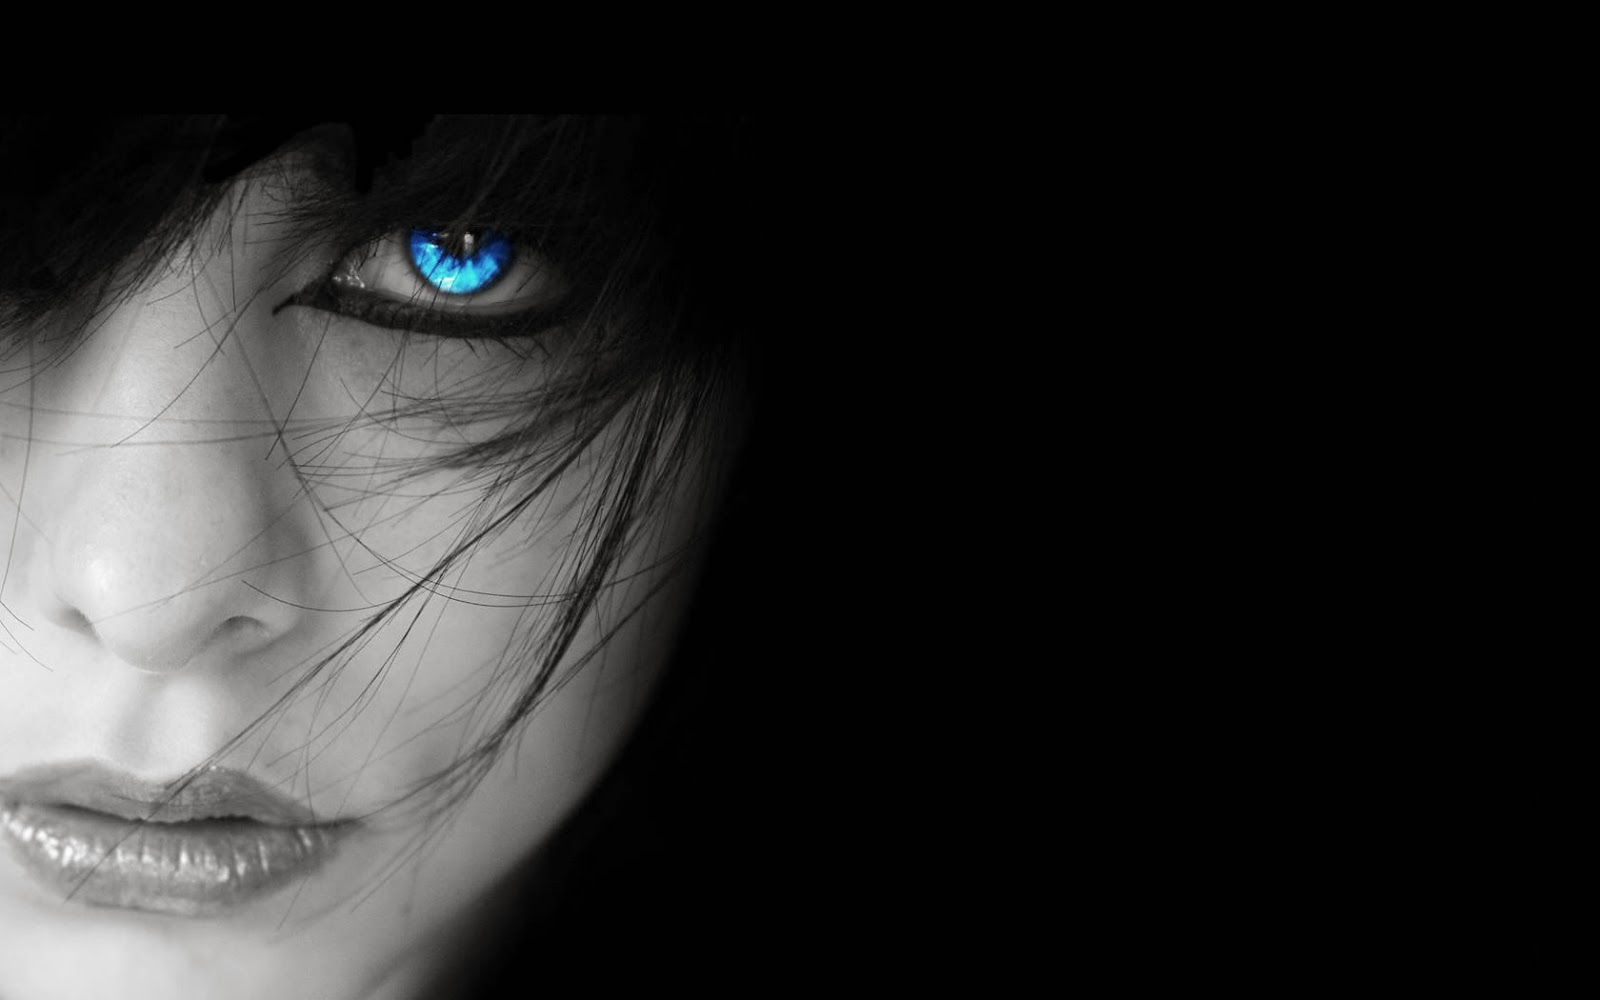 FREE HD WALLPAPER DOWNLOAD Blue Eyes Wallpapers 1600x1000